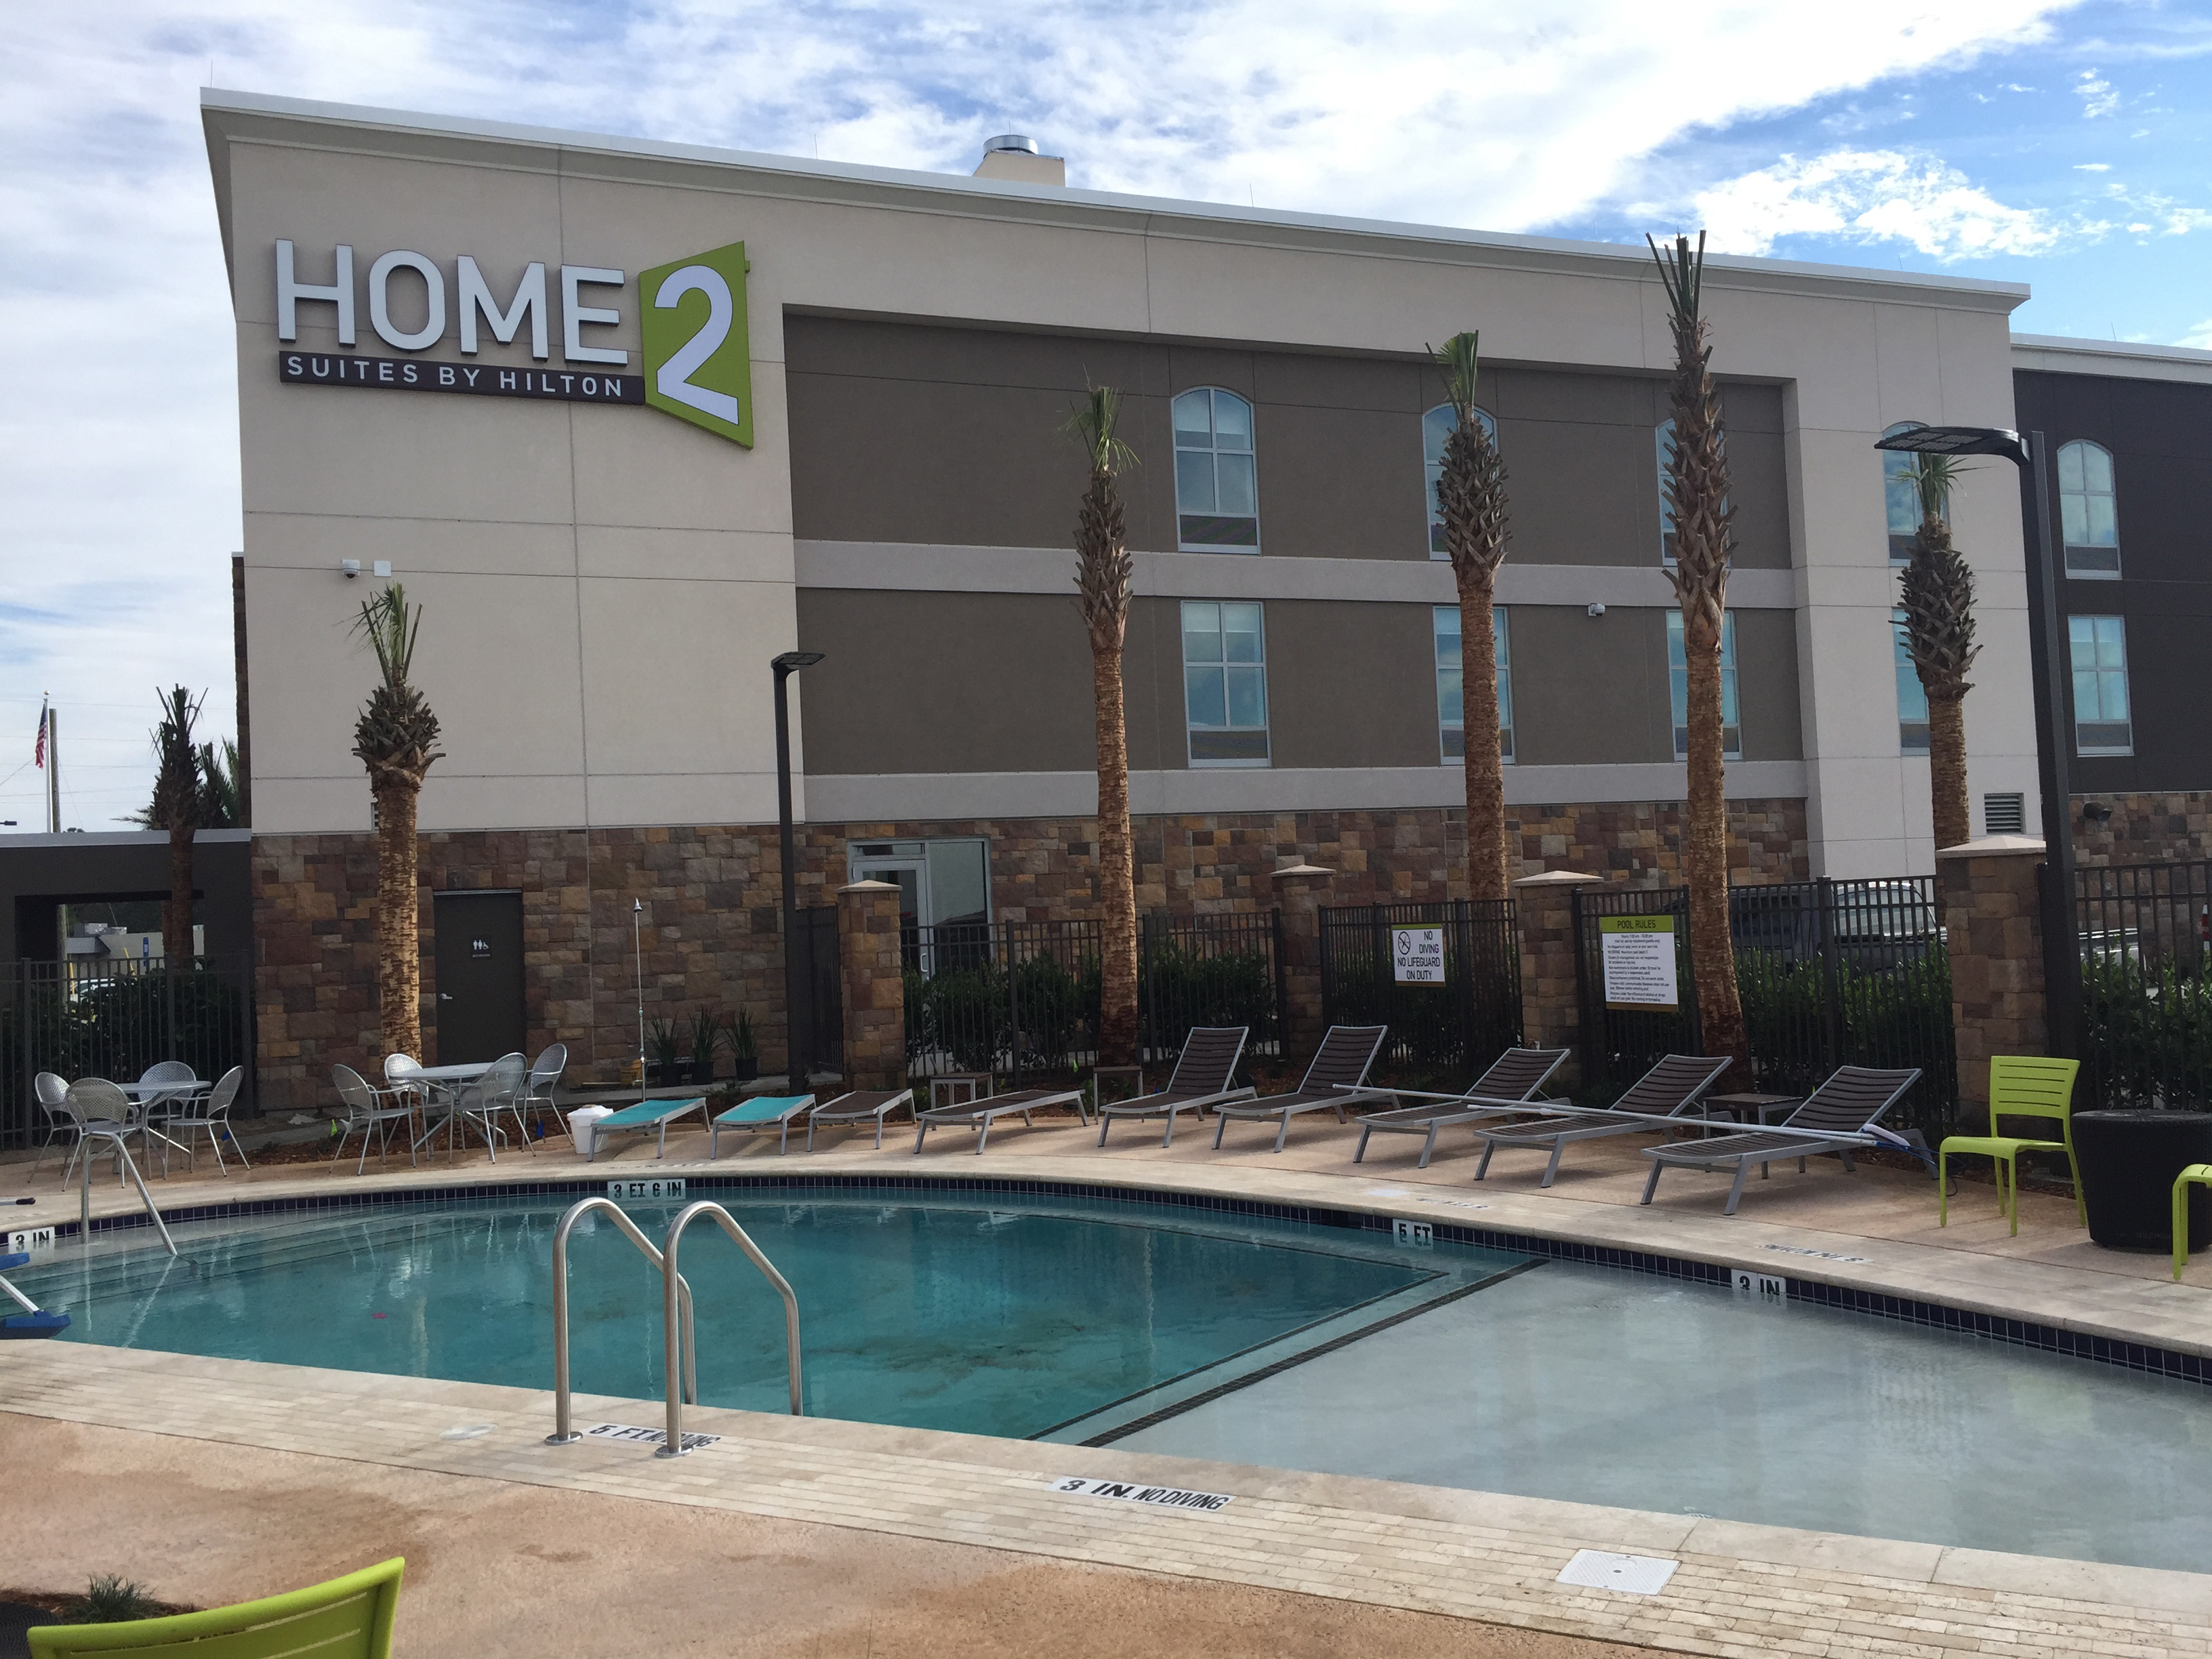 Home2 Suites By Hilton Opens Newest Property In St  Simons